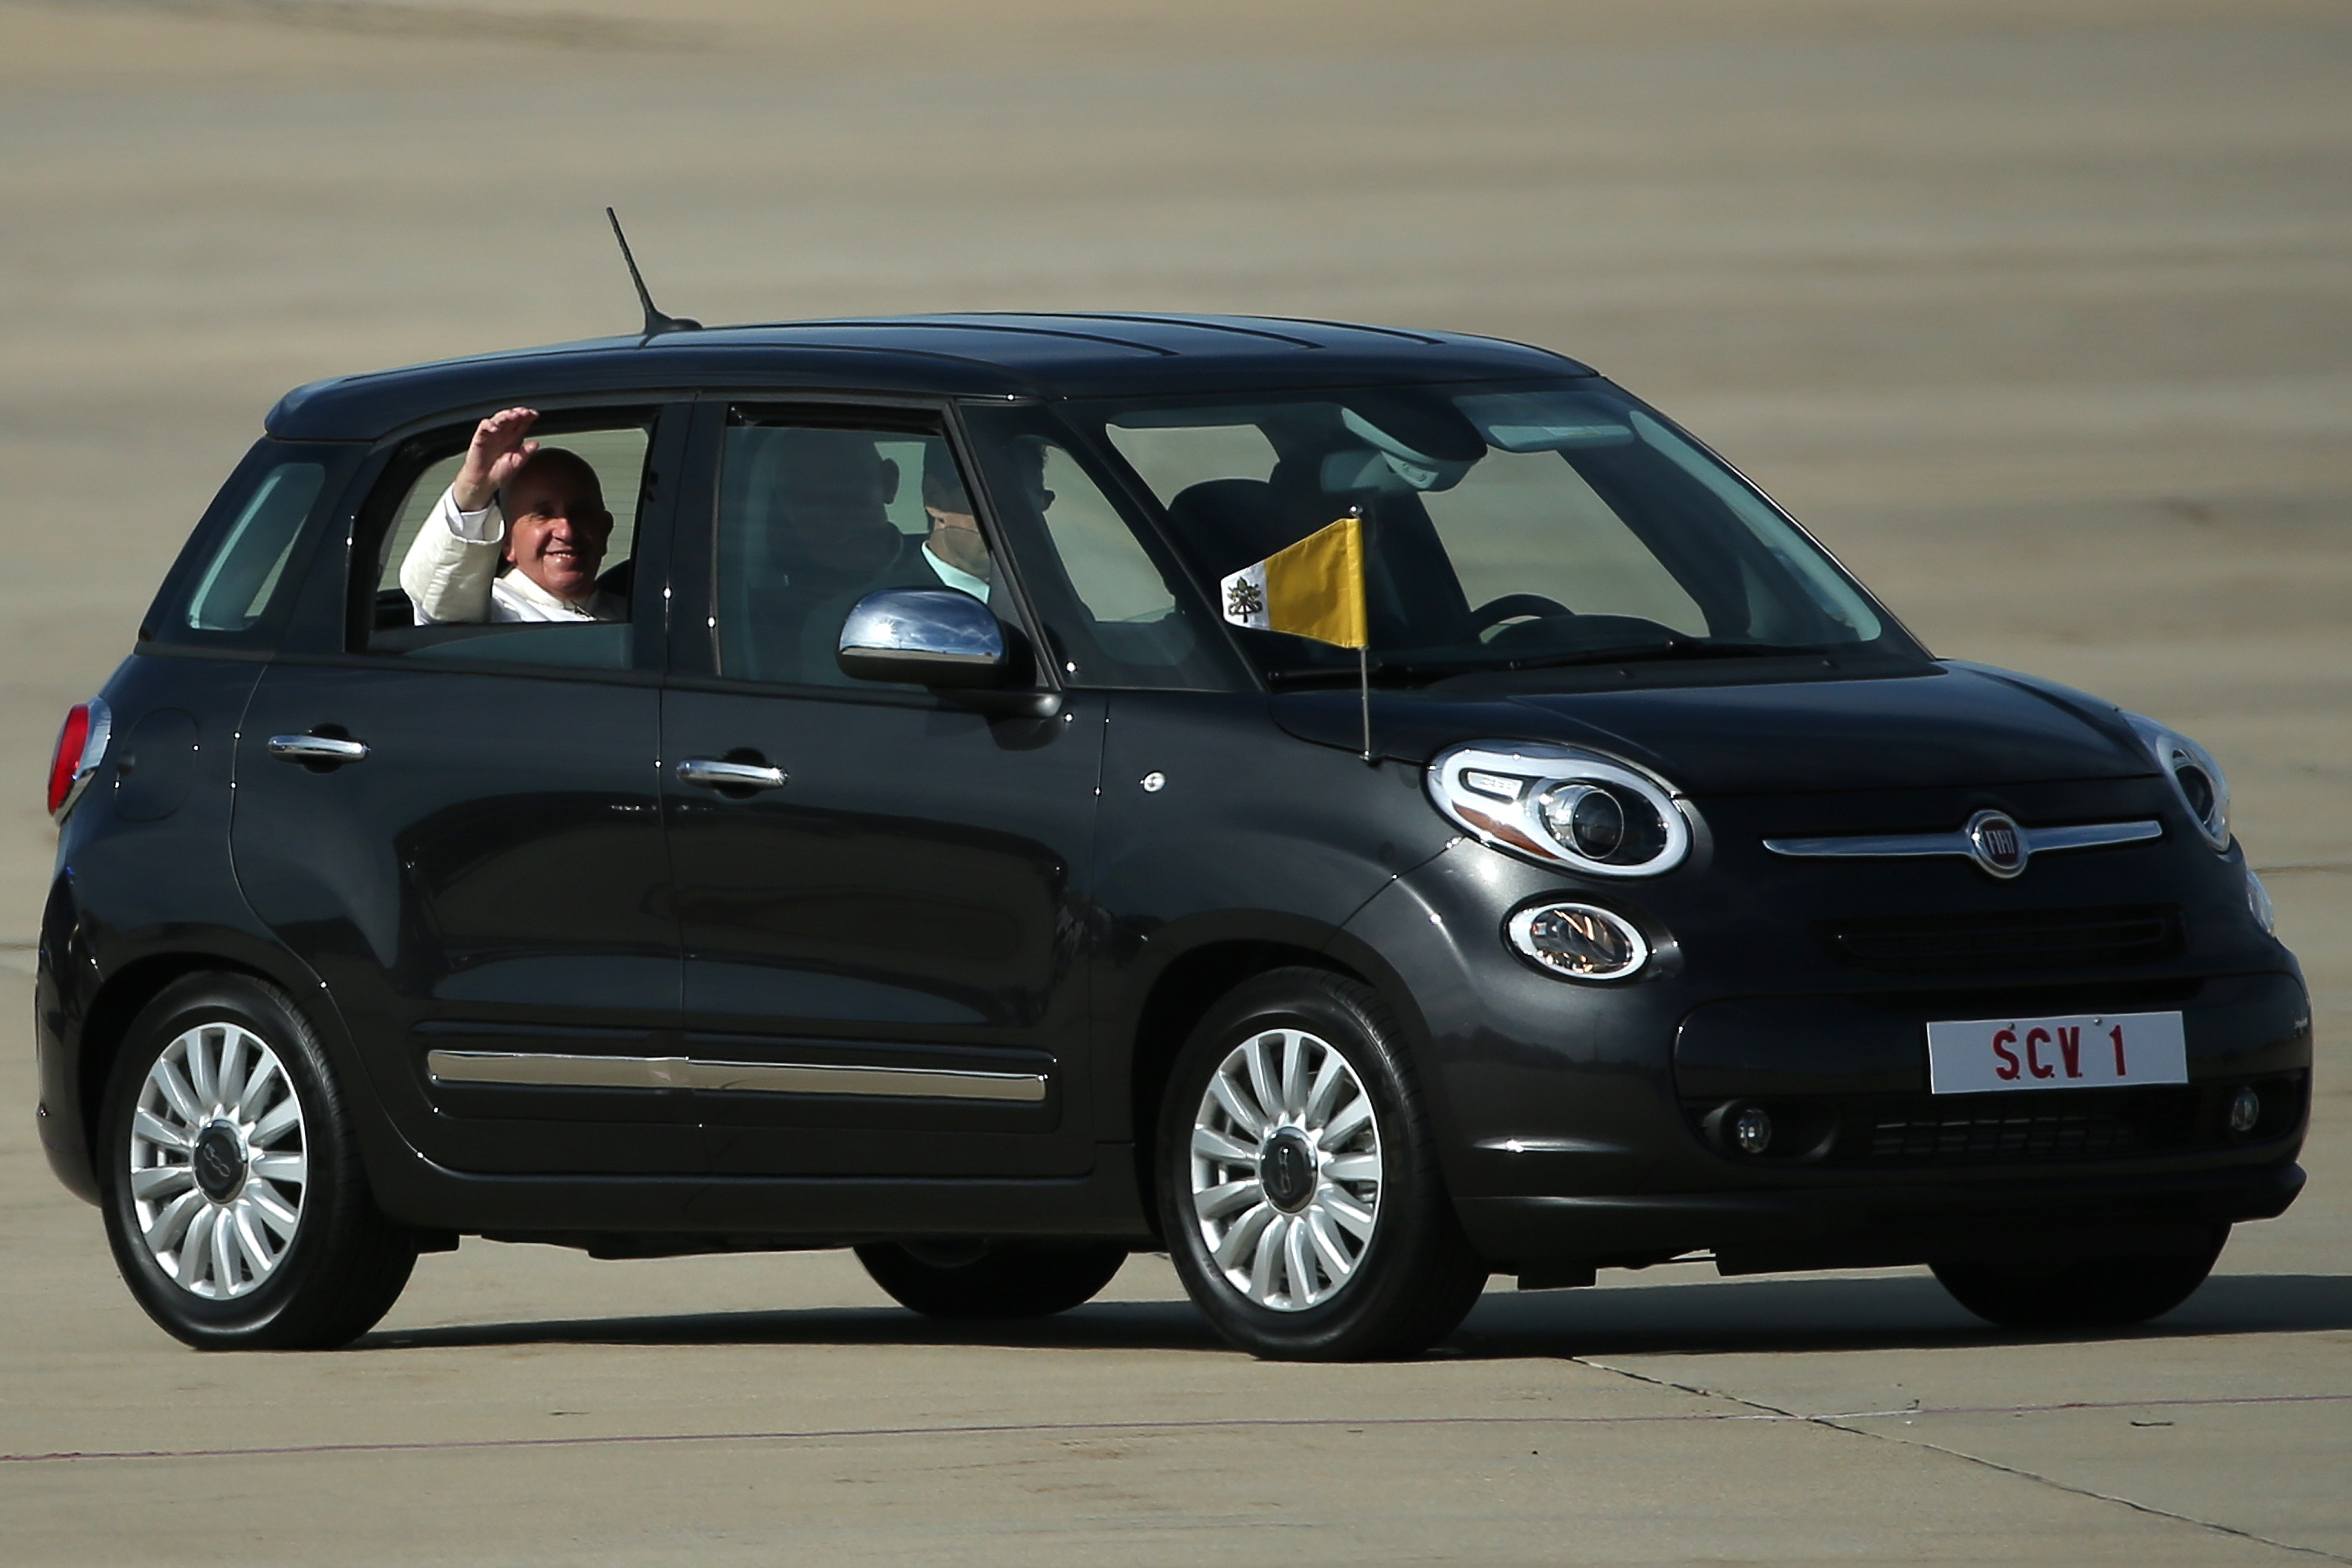 the fiat 500l usedpope francis during philadelphia visit is up